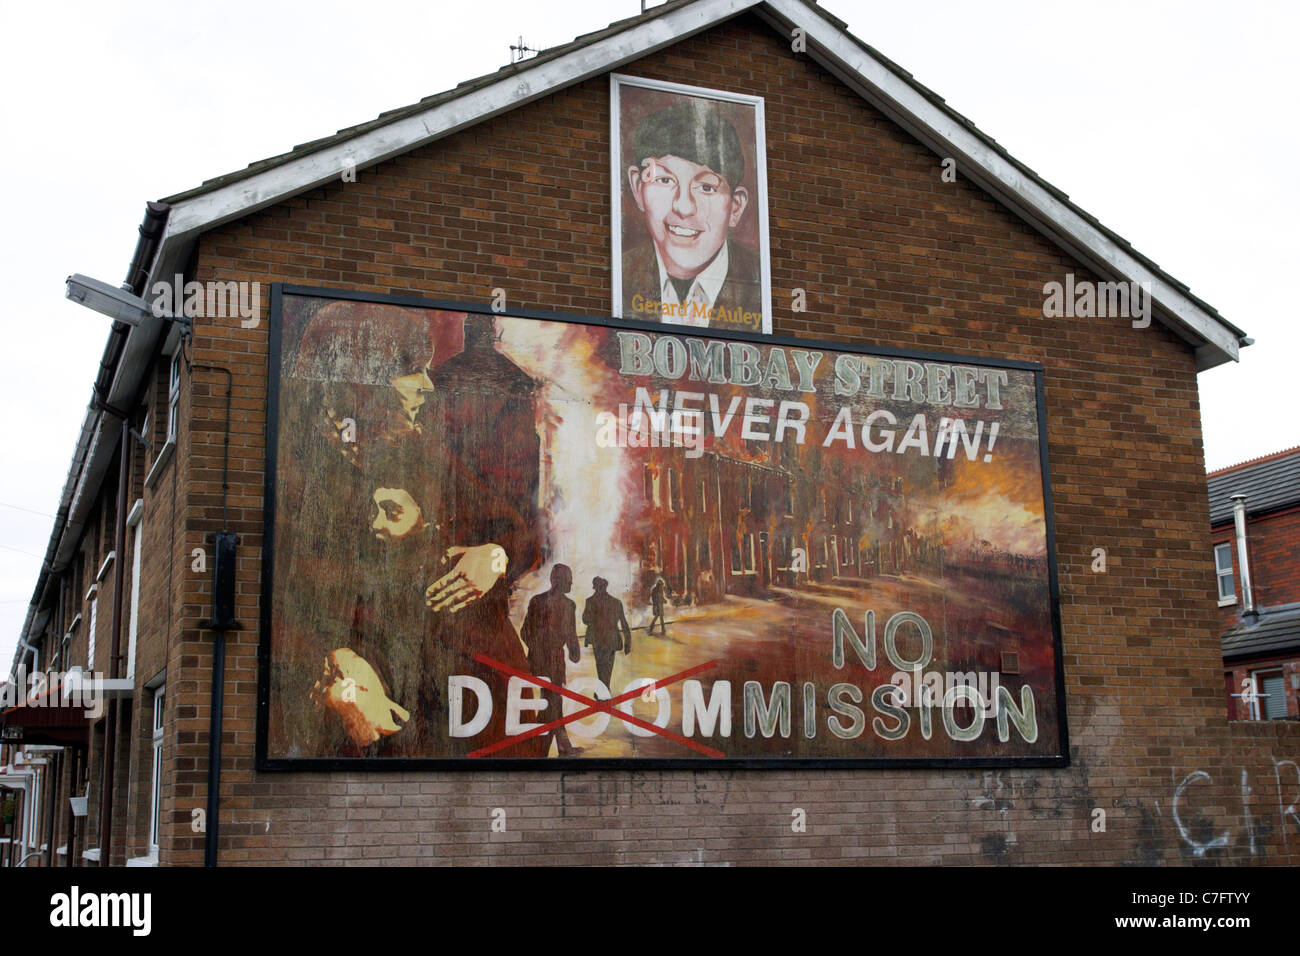 gerard mcauley and bombay street no decomissioning republican wall mural painting west belfast northern ireland - Stock Image